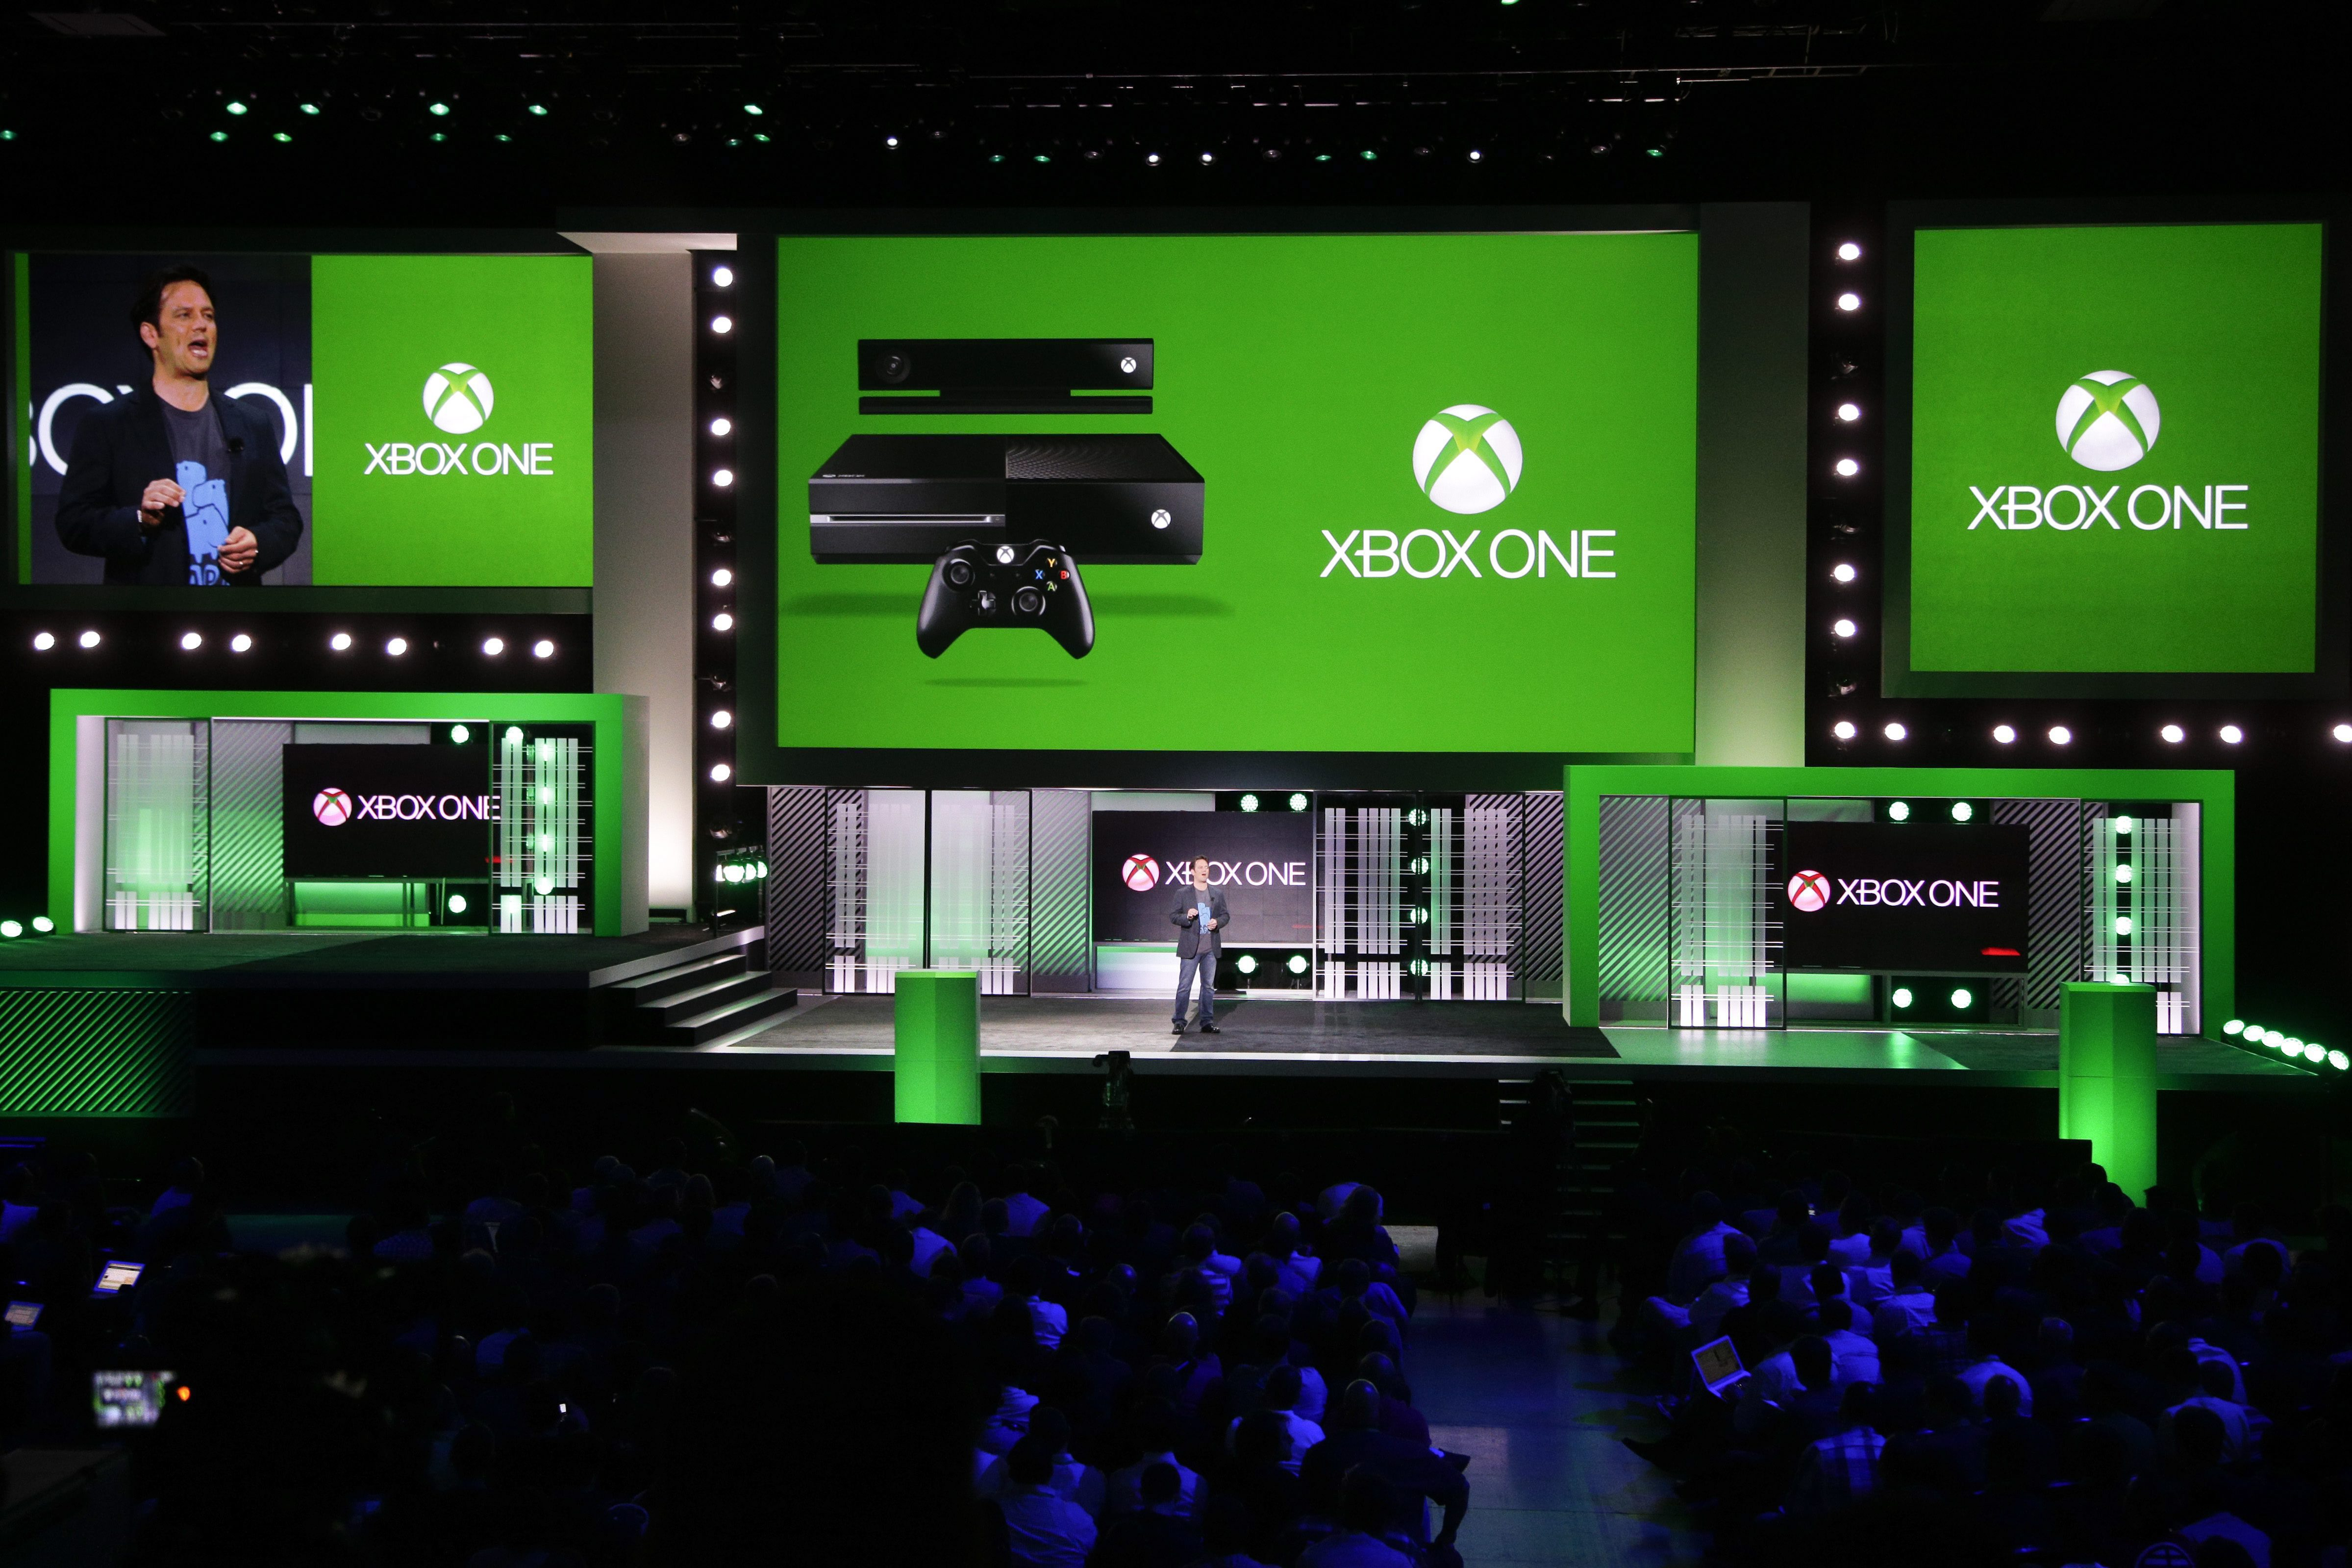 microsoft and the xbox one Xbox one s bundle deals right now, microsoft is selling its entry-level xbox one s along with a free game starting at $229 that's a $50 savings before you get your free game admittedly.